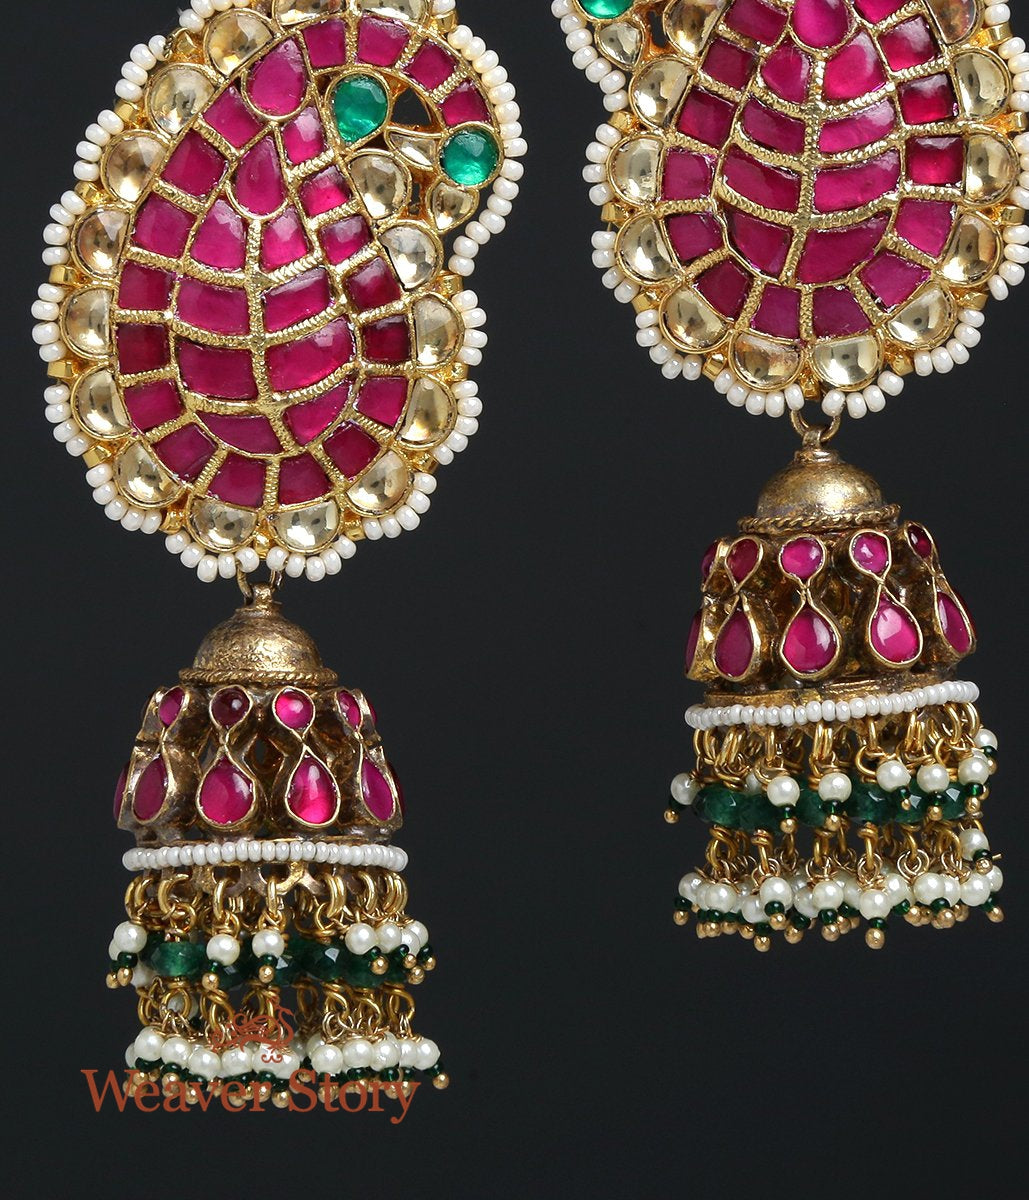 Paisley Jhumka Earrings with Pearl Drops